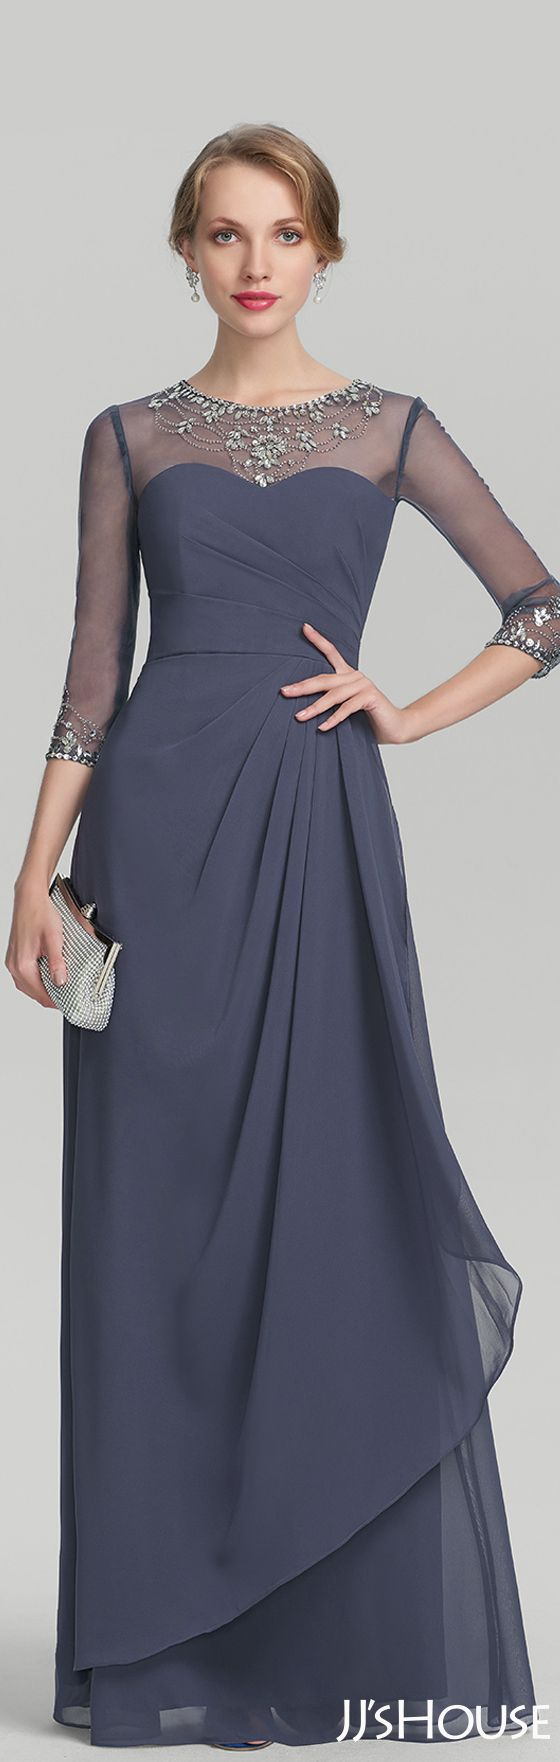 Modern and chic mother dress! #JJsHouse # Mother